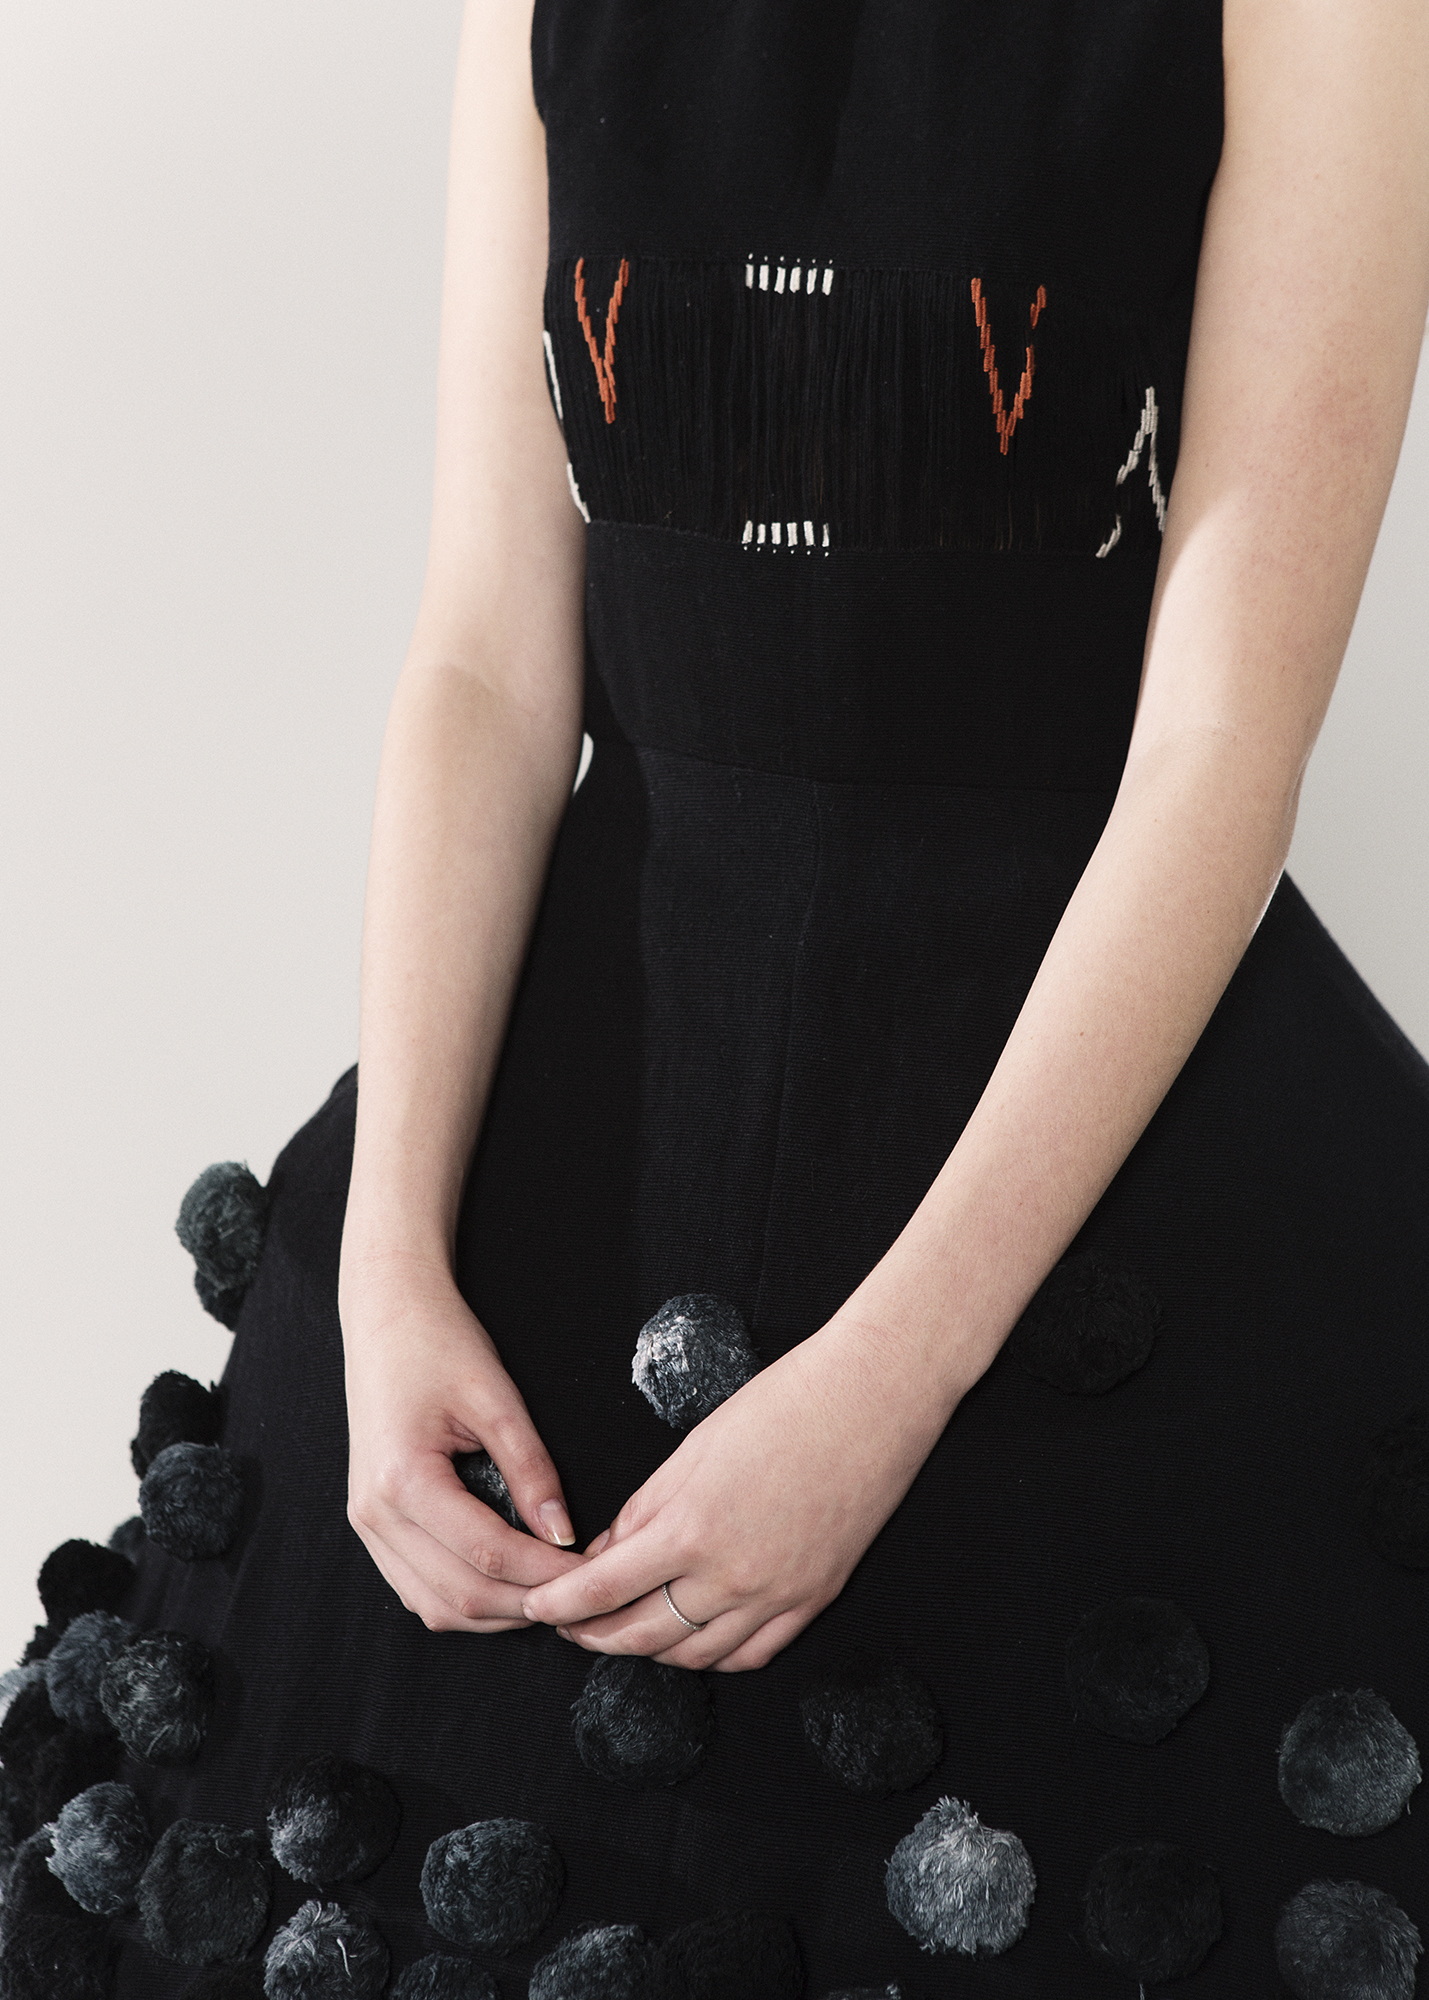 Absentia  Pompom dress One size  Waist loom and hand-embroidered $2,500.00 + Shipping